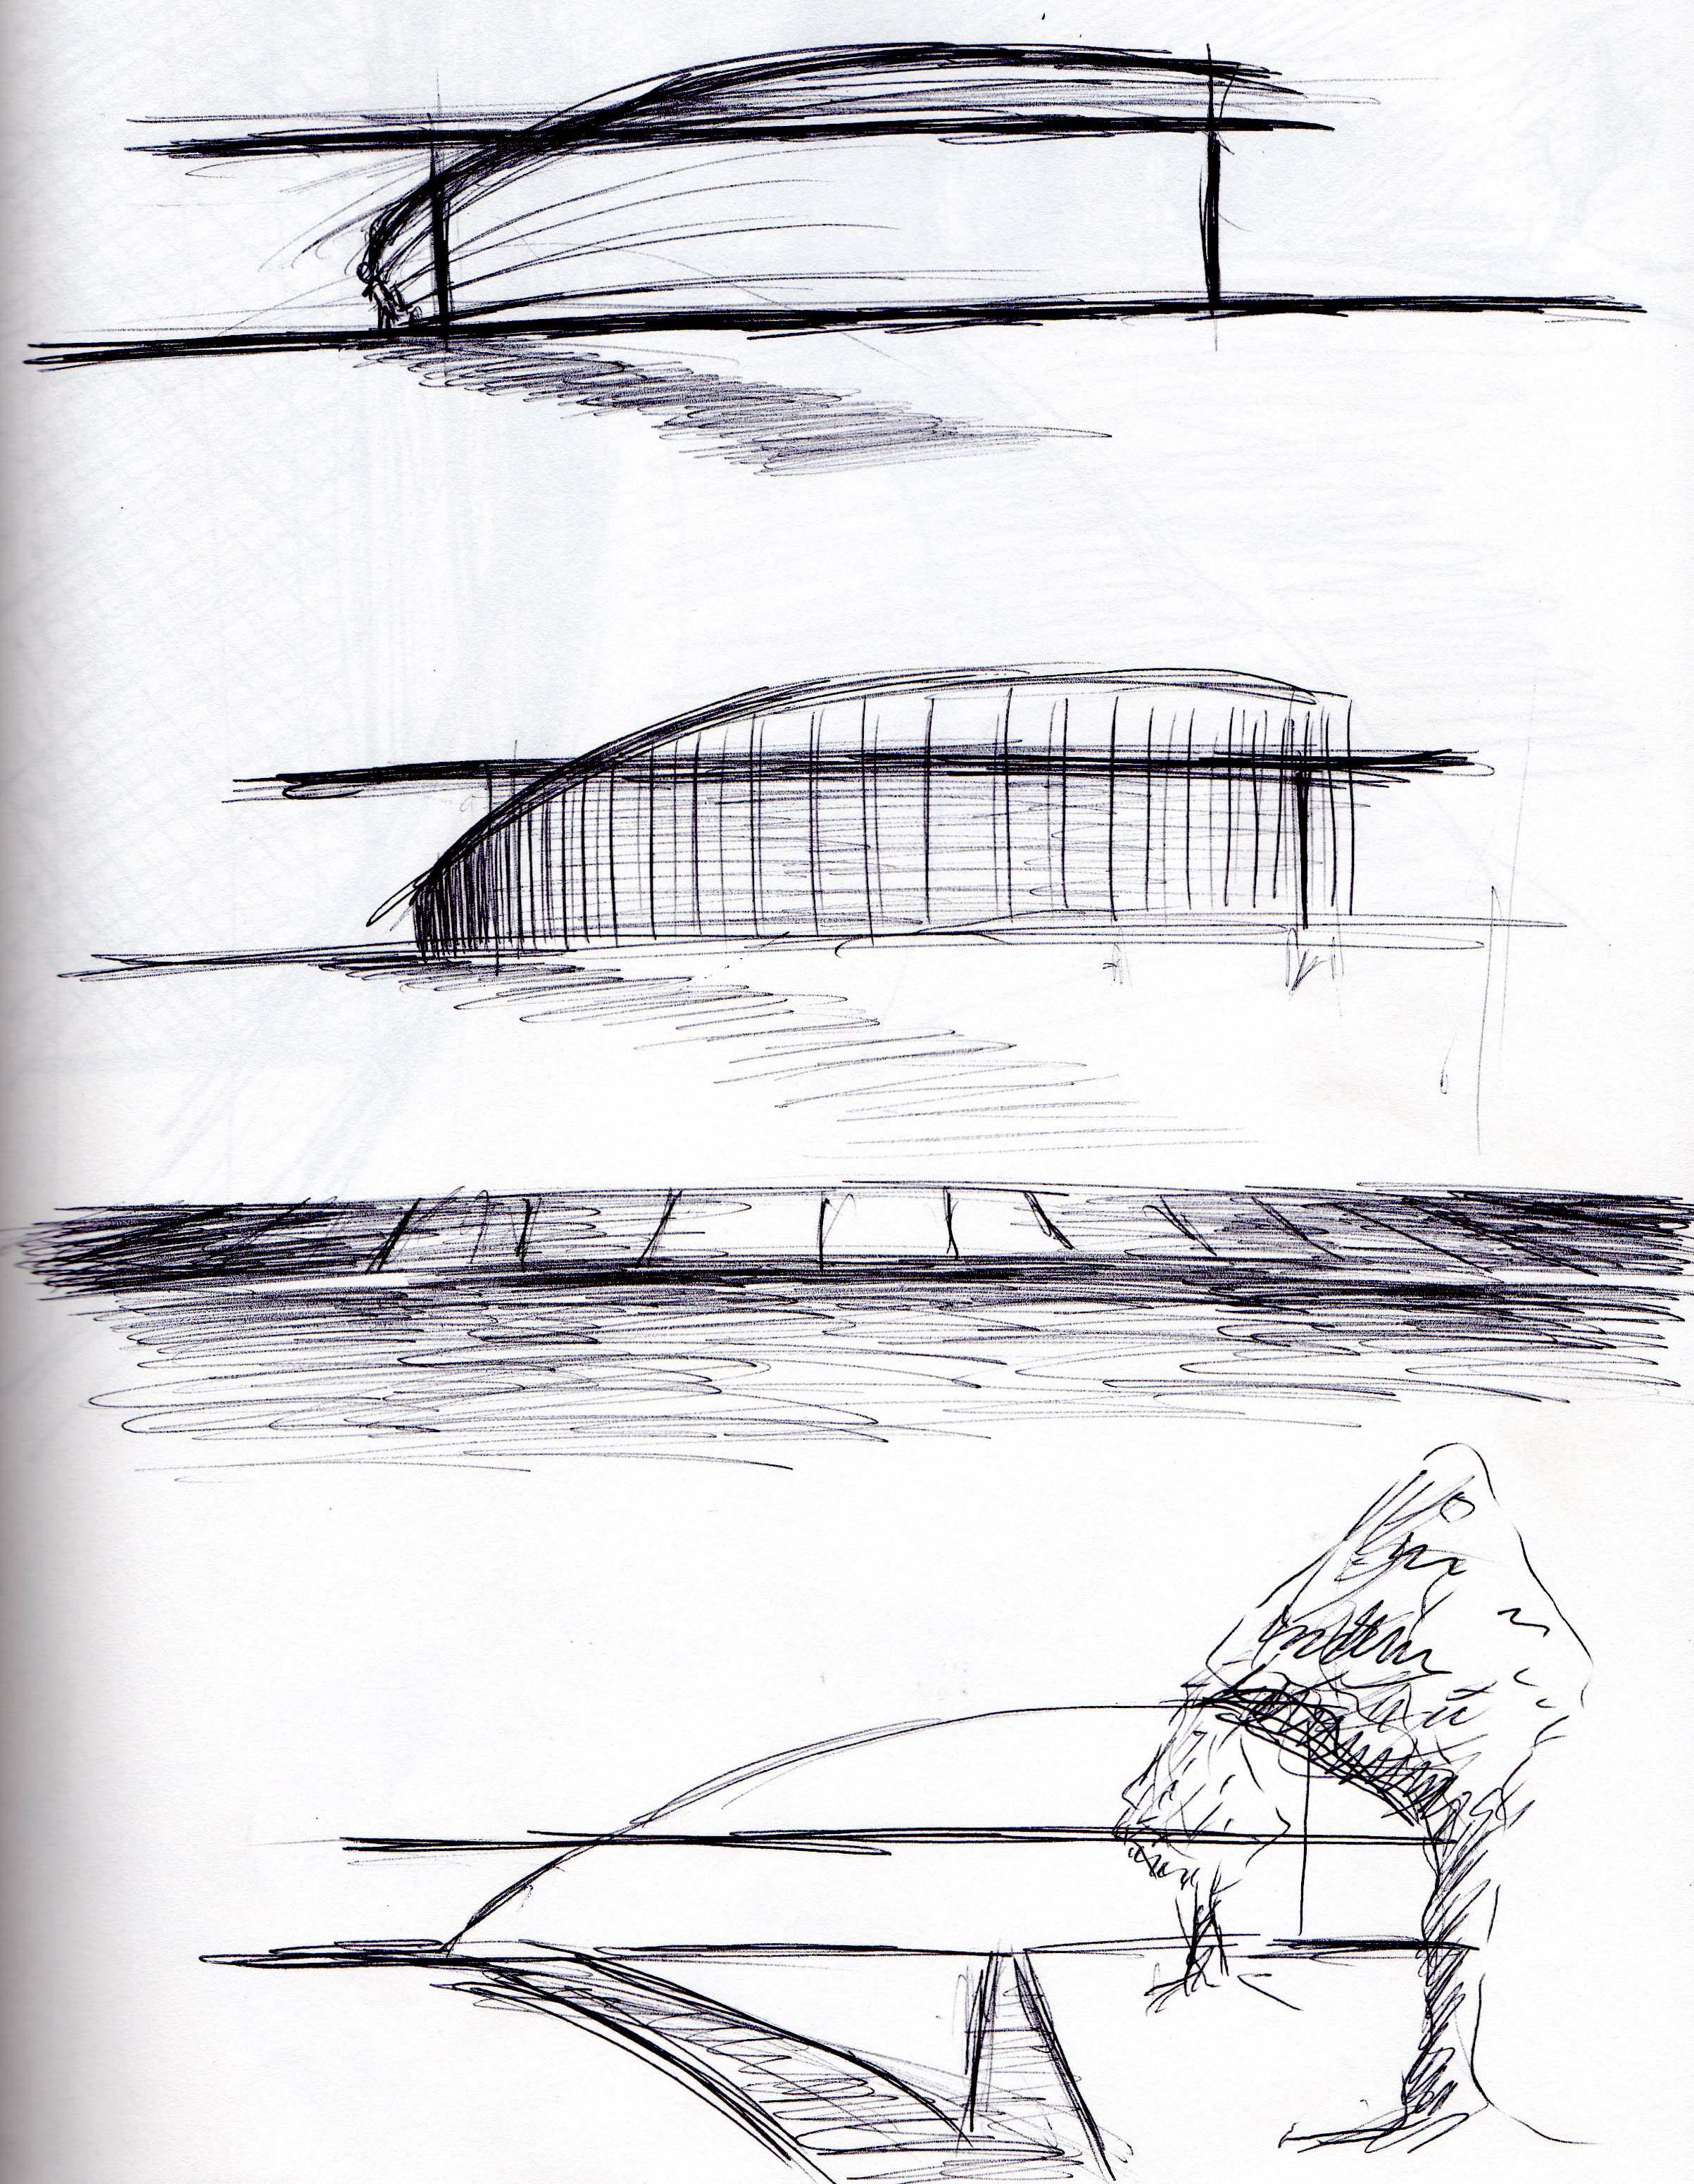 Site Sketch- Facade and Circulation